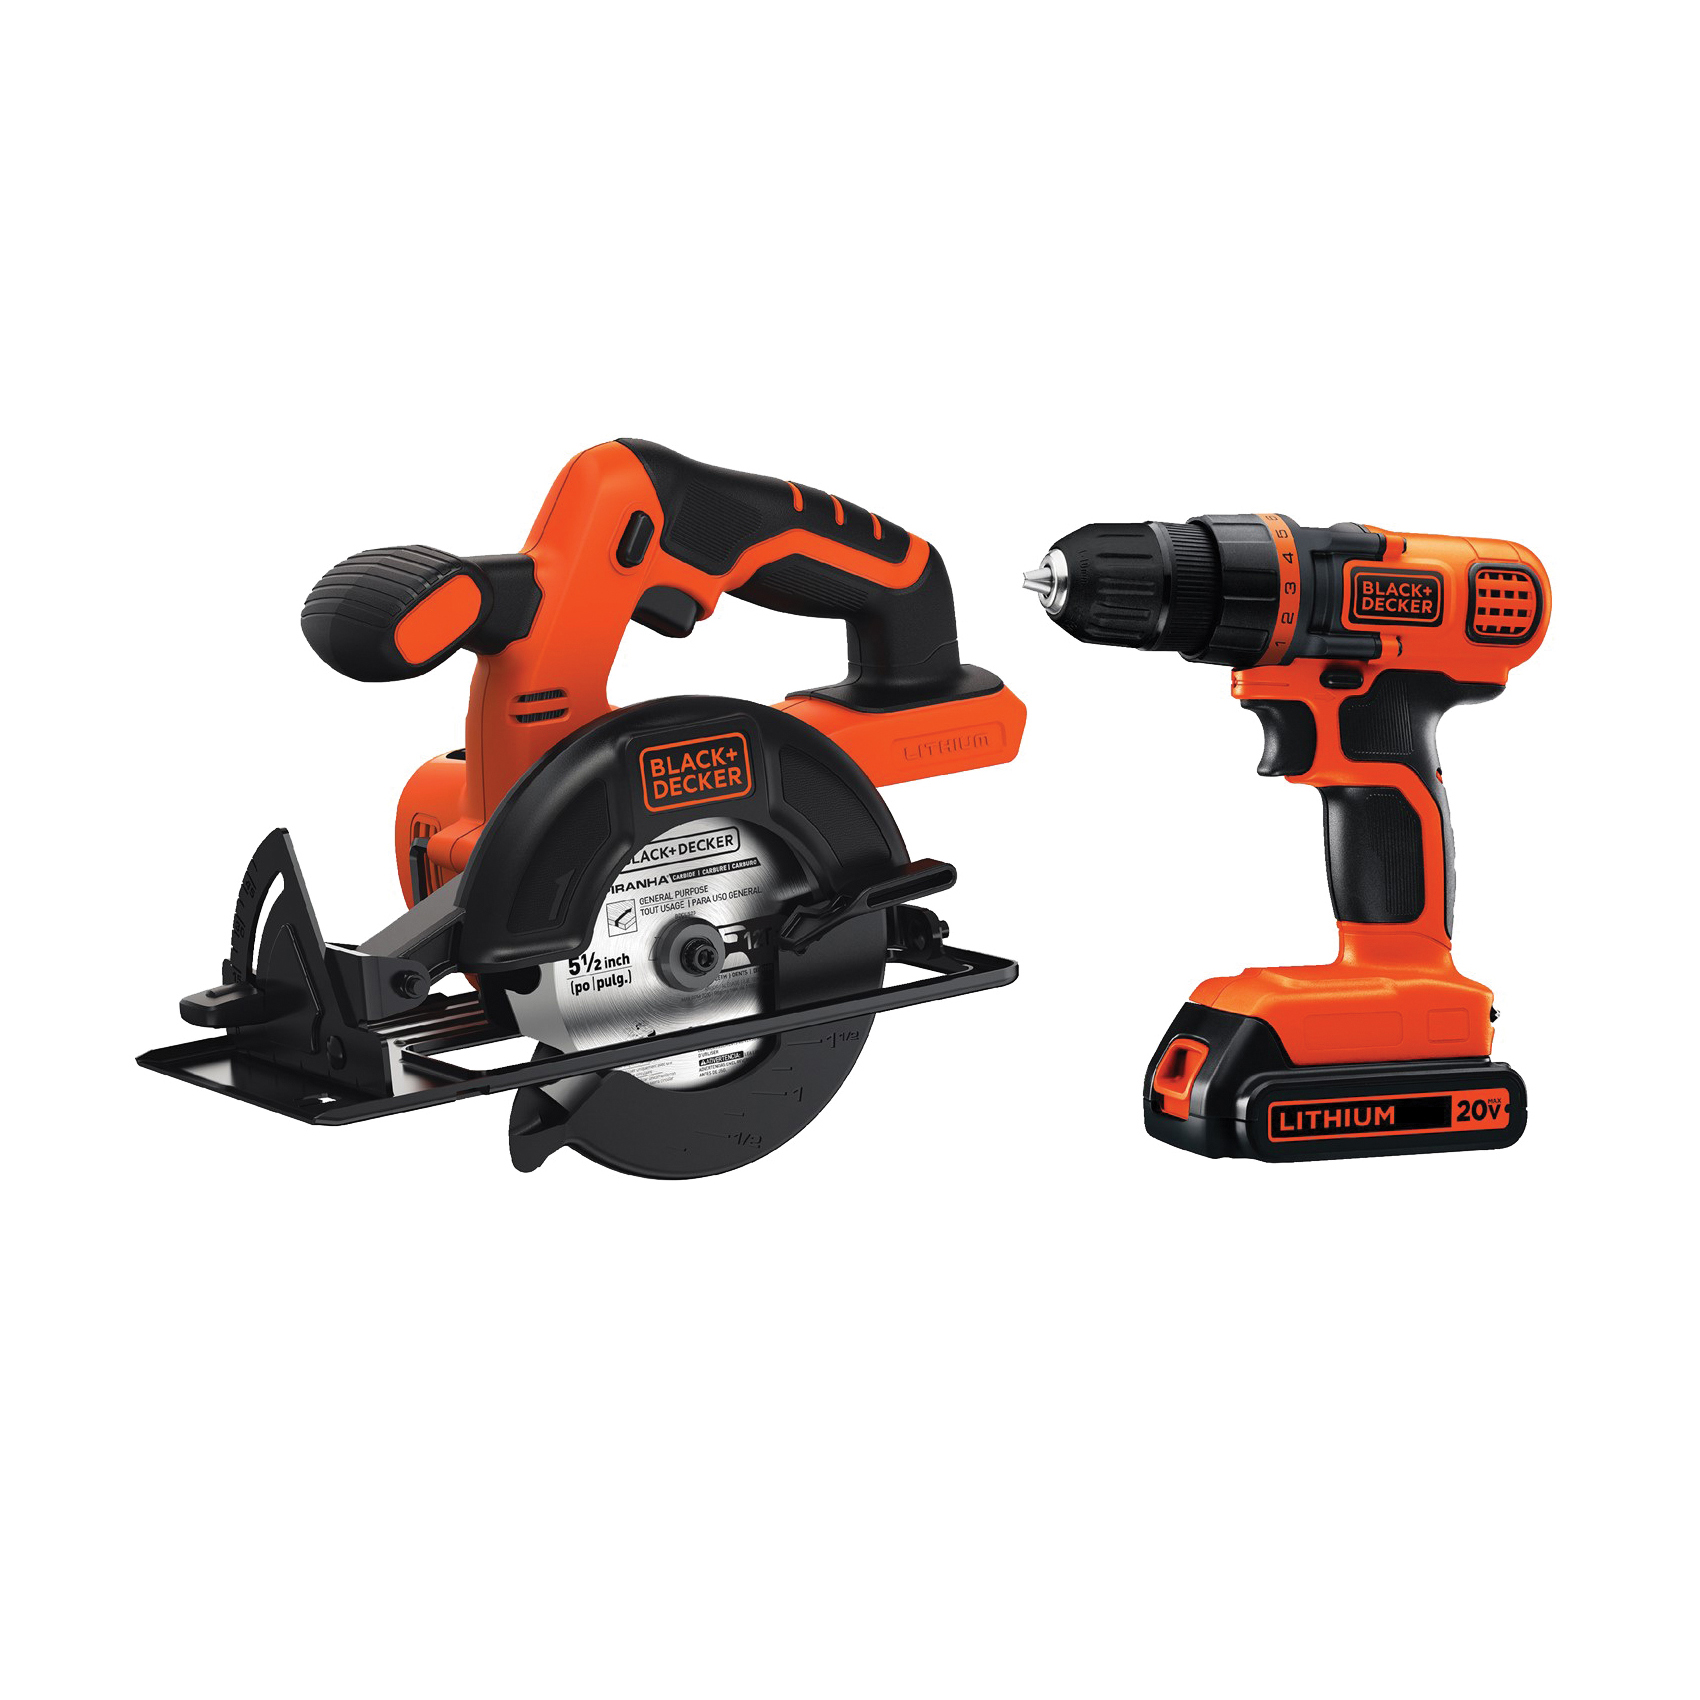 Picture of Black+Decker BD2KITCDDCS Combo Kit, Battery Included: Yes